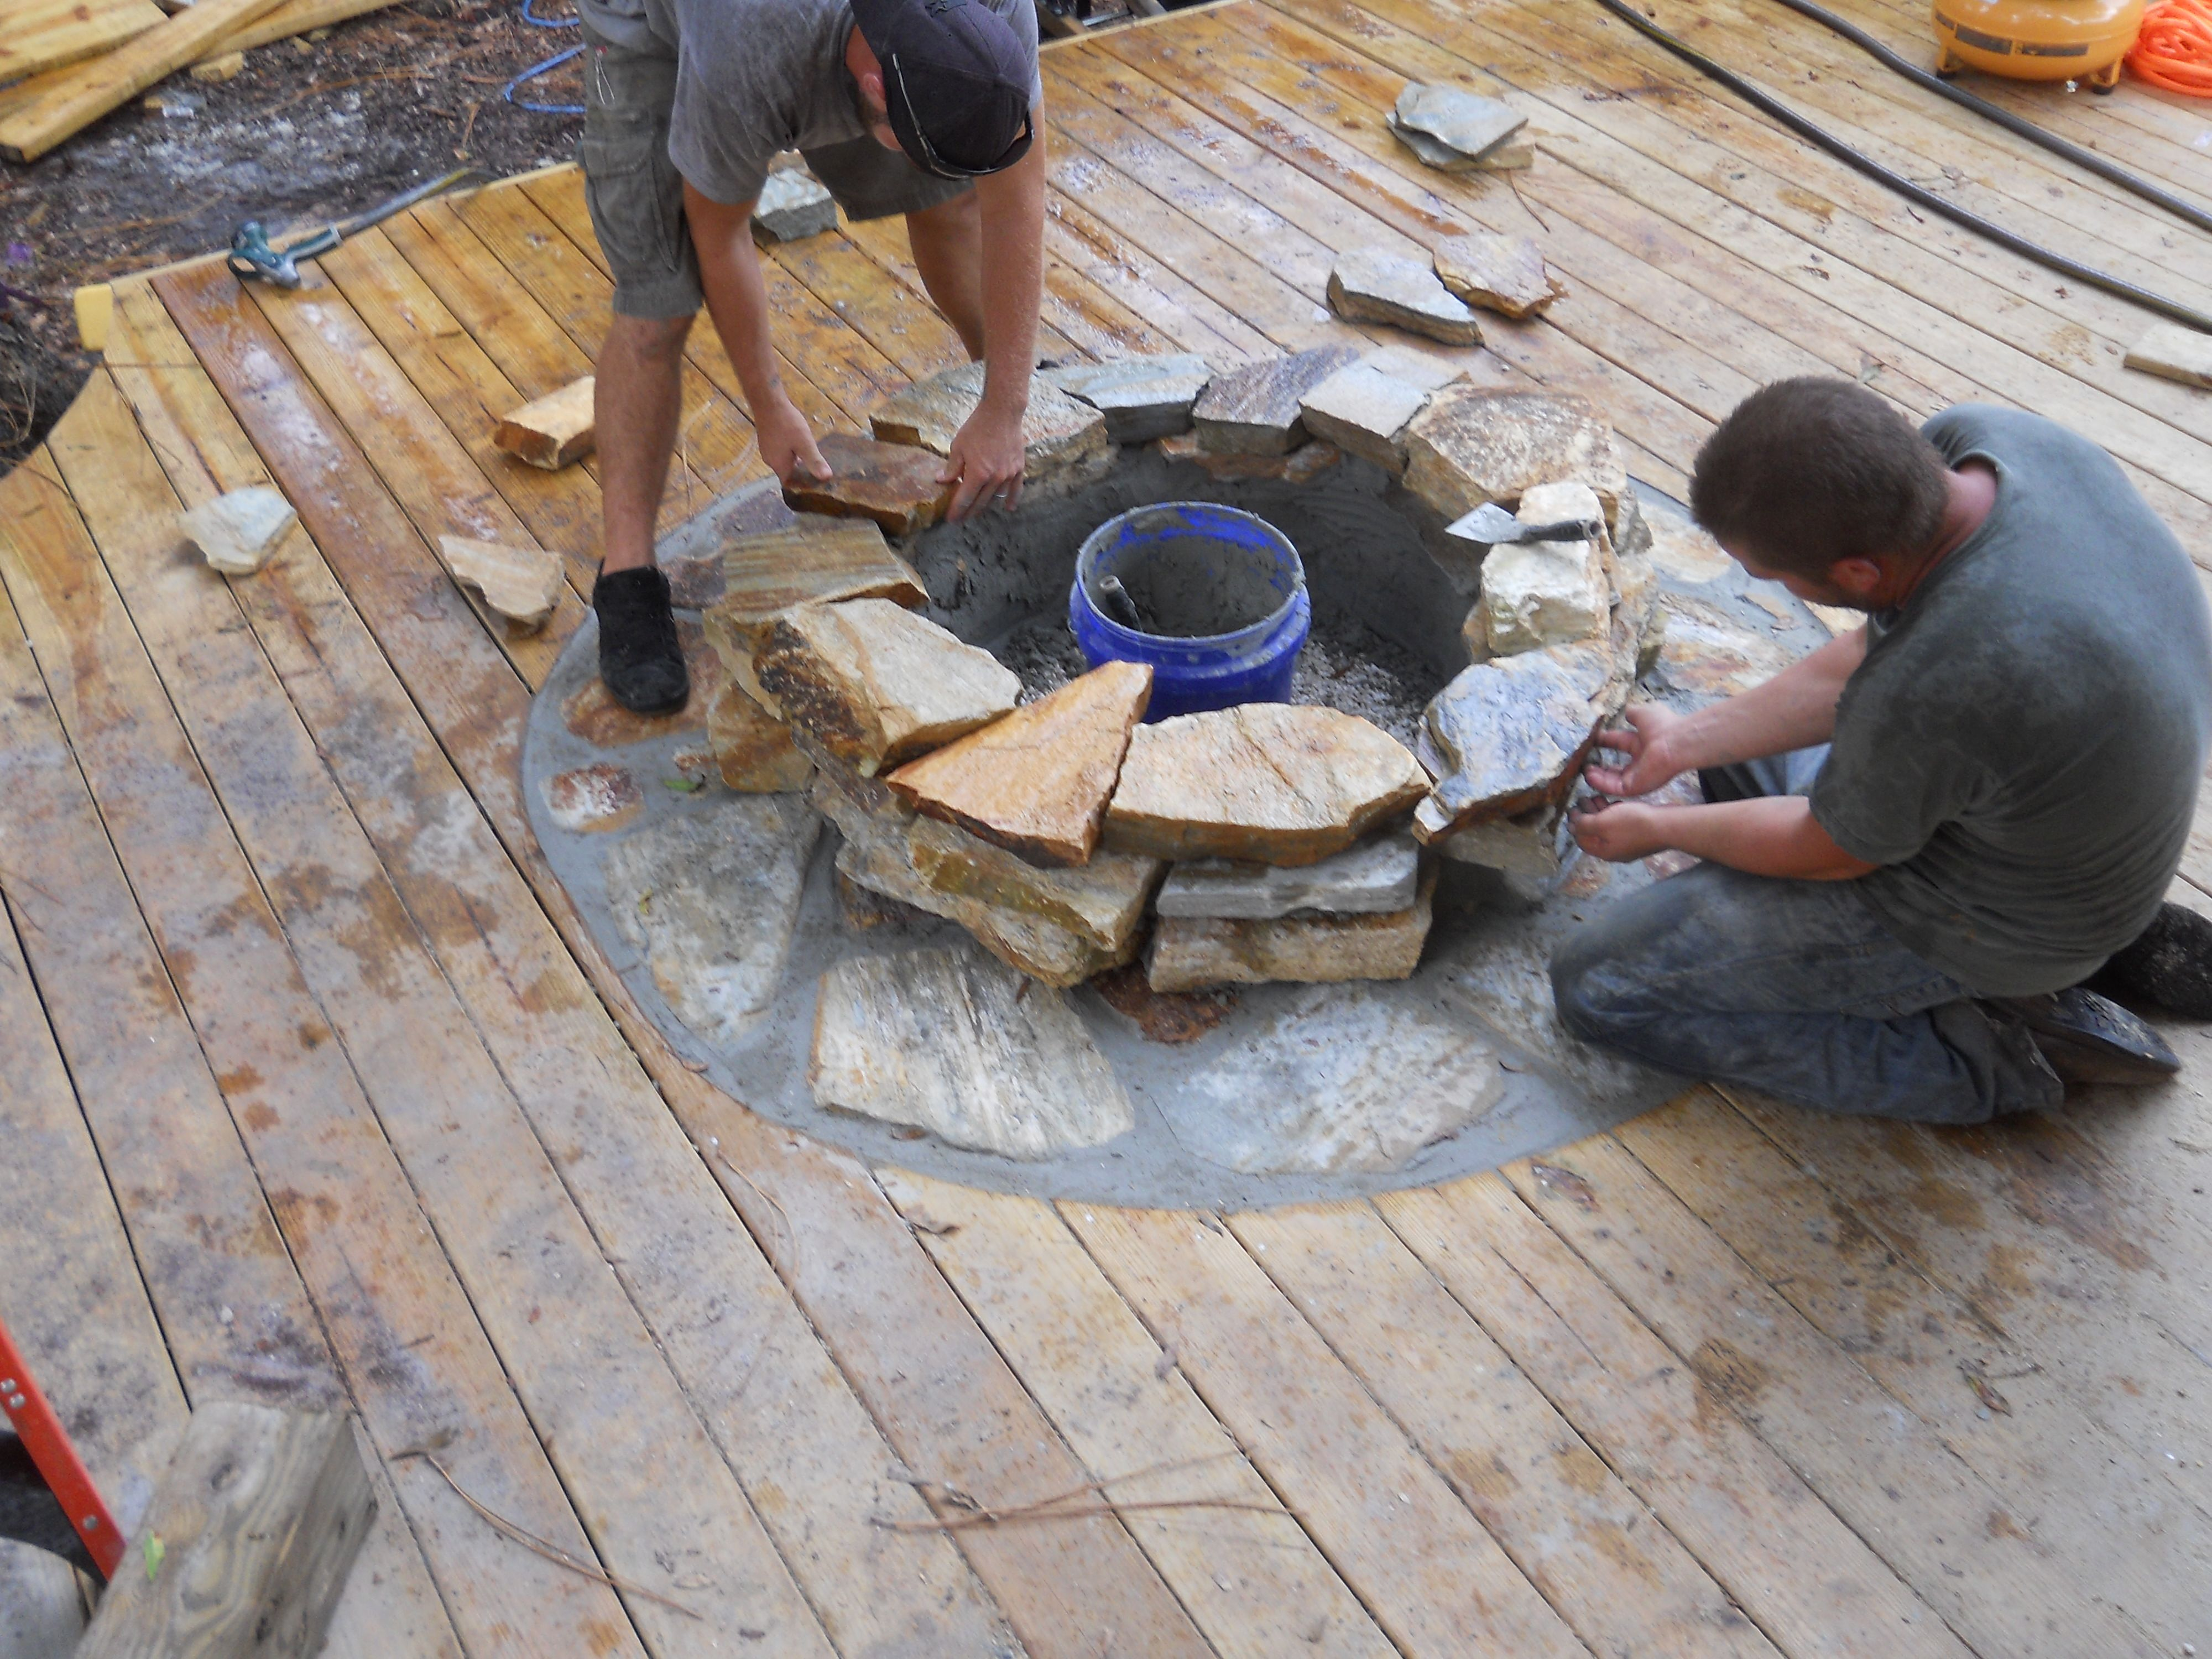 Wood fire pit on wood deck - Craftsmen Constructing A Natural Stone Fire Pit On Wooden Deck With Stone Inlay Www